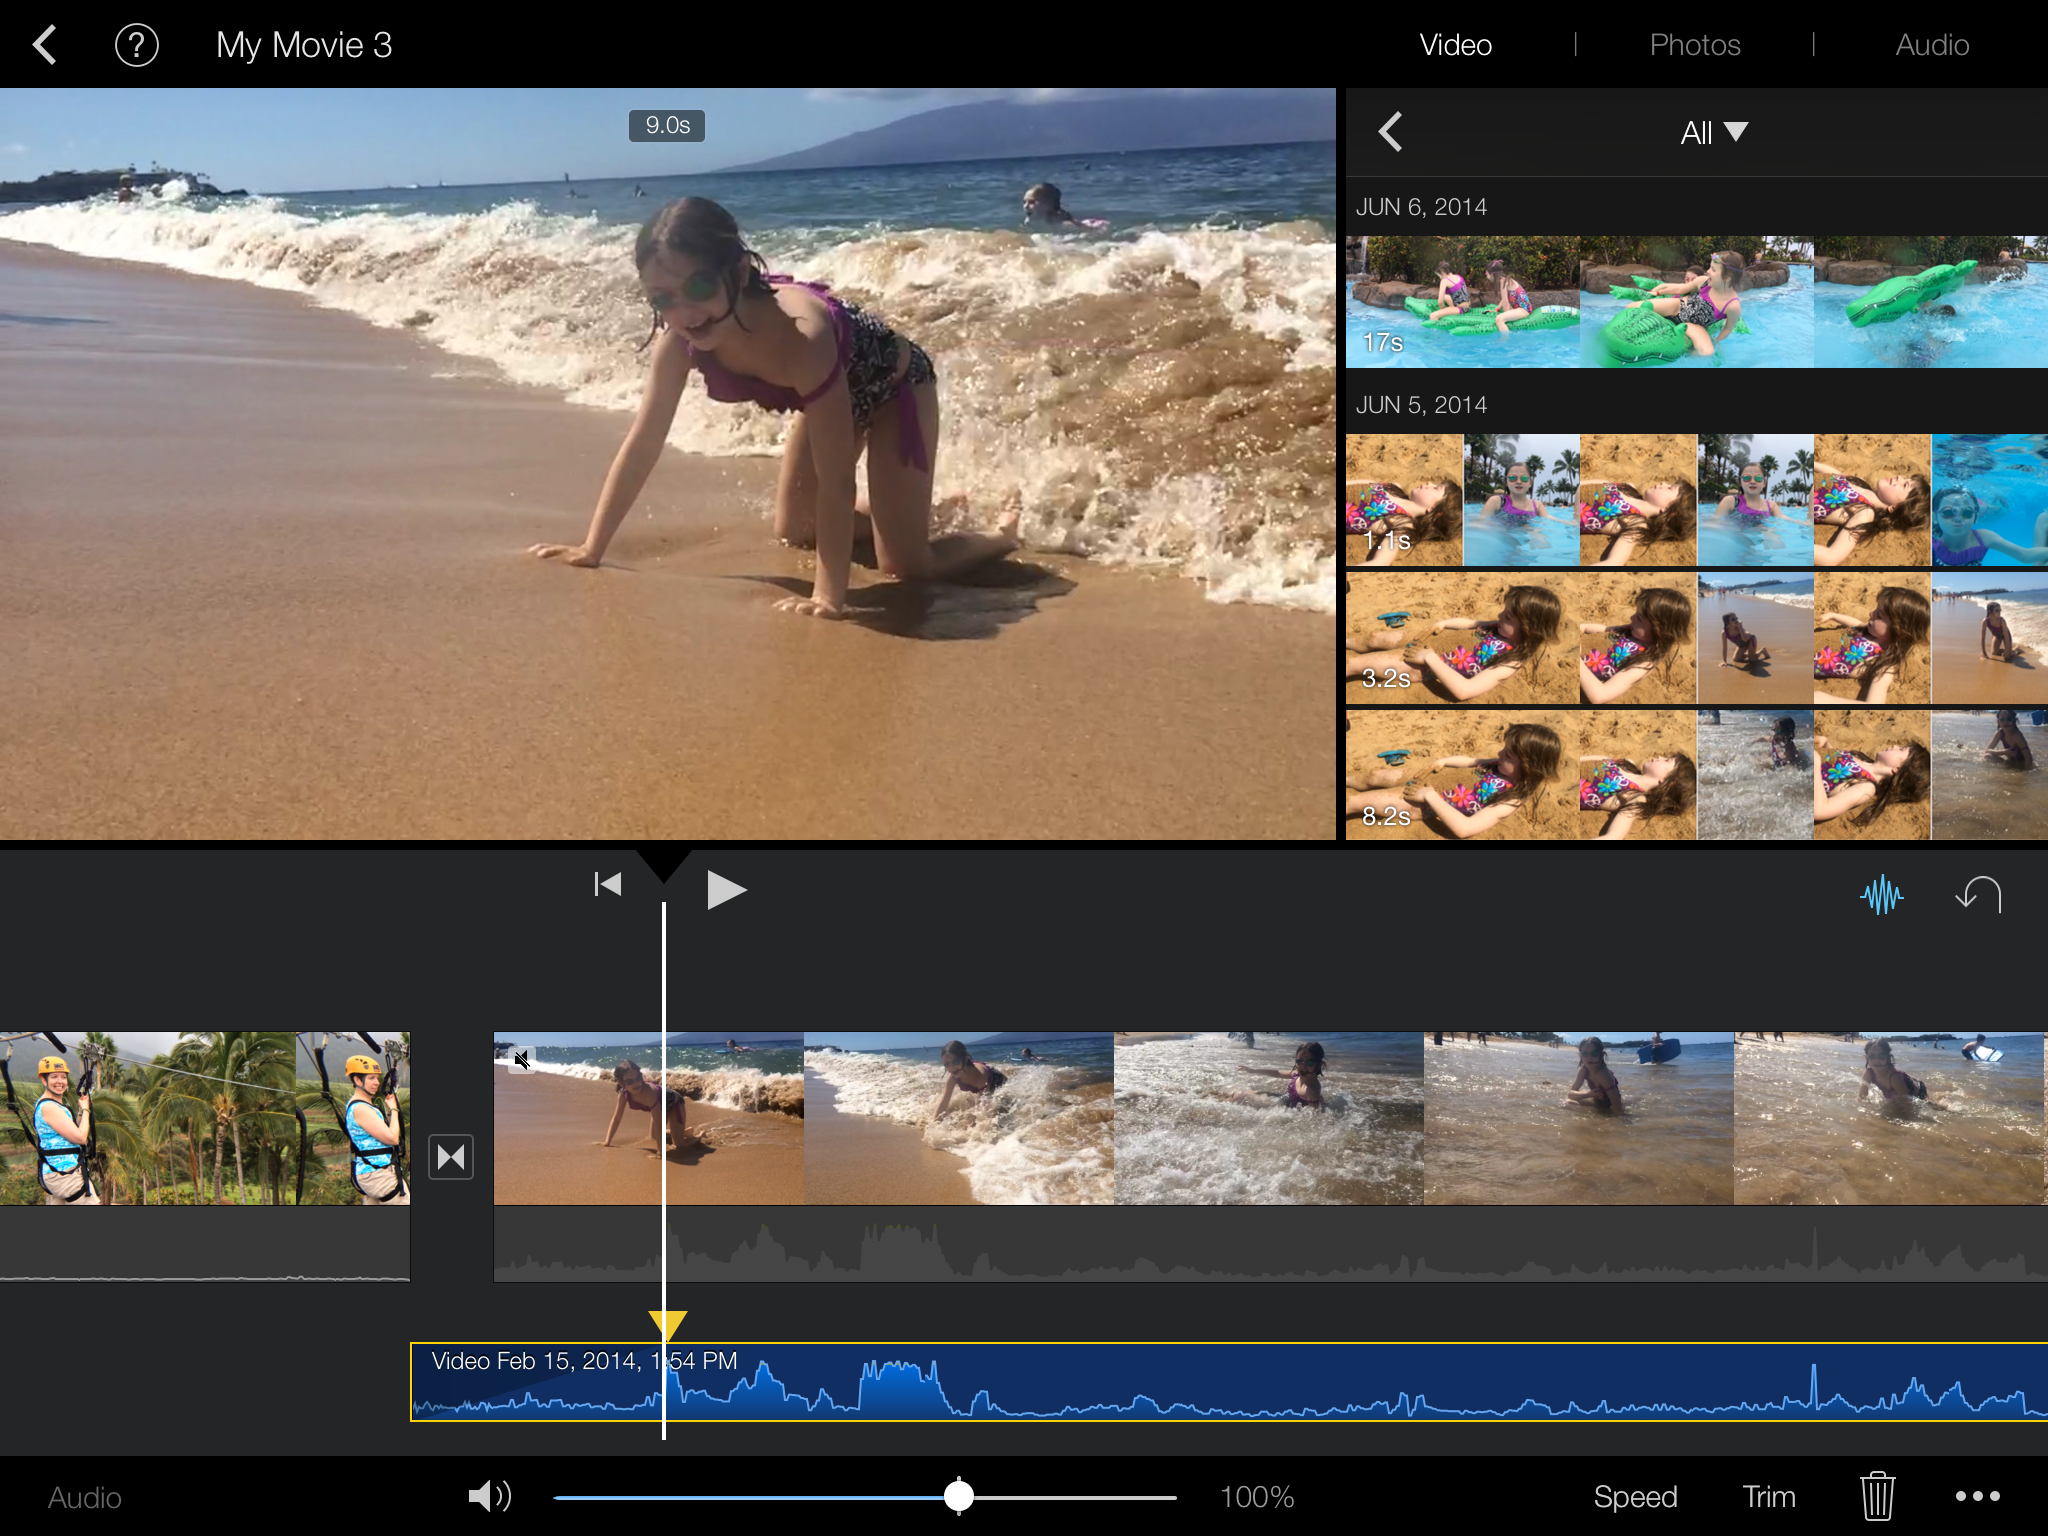 How to make a music video on imovie on iphone